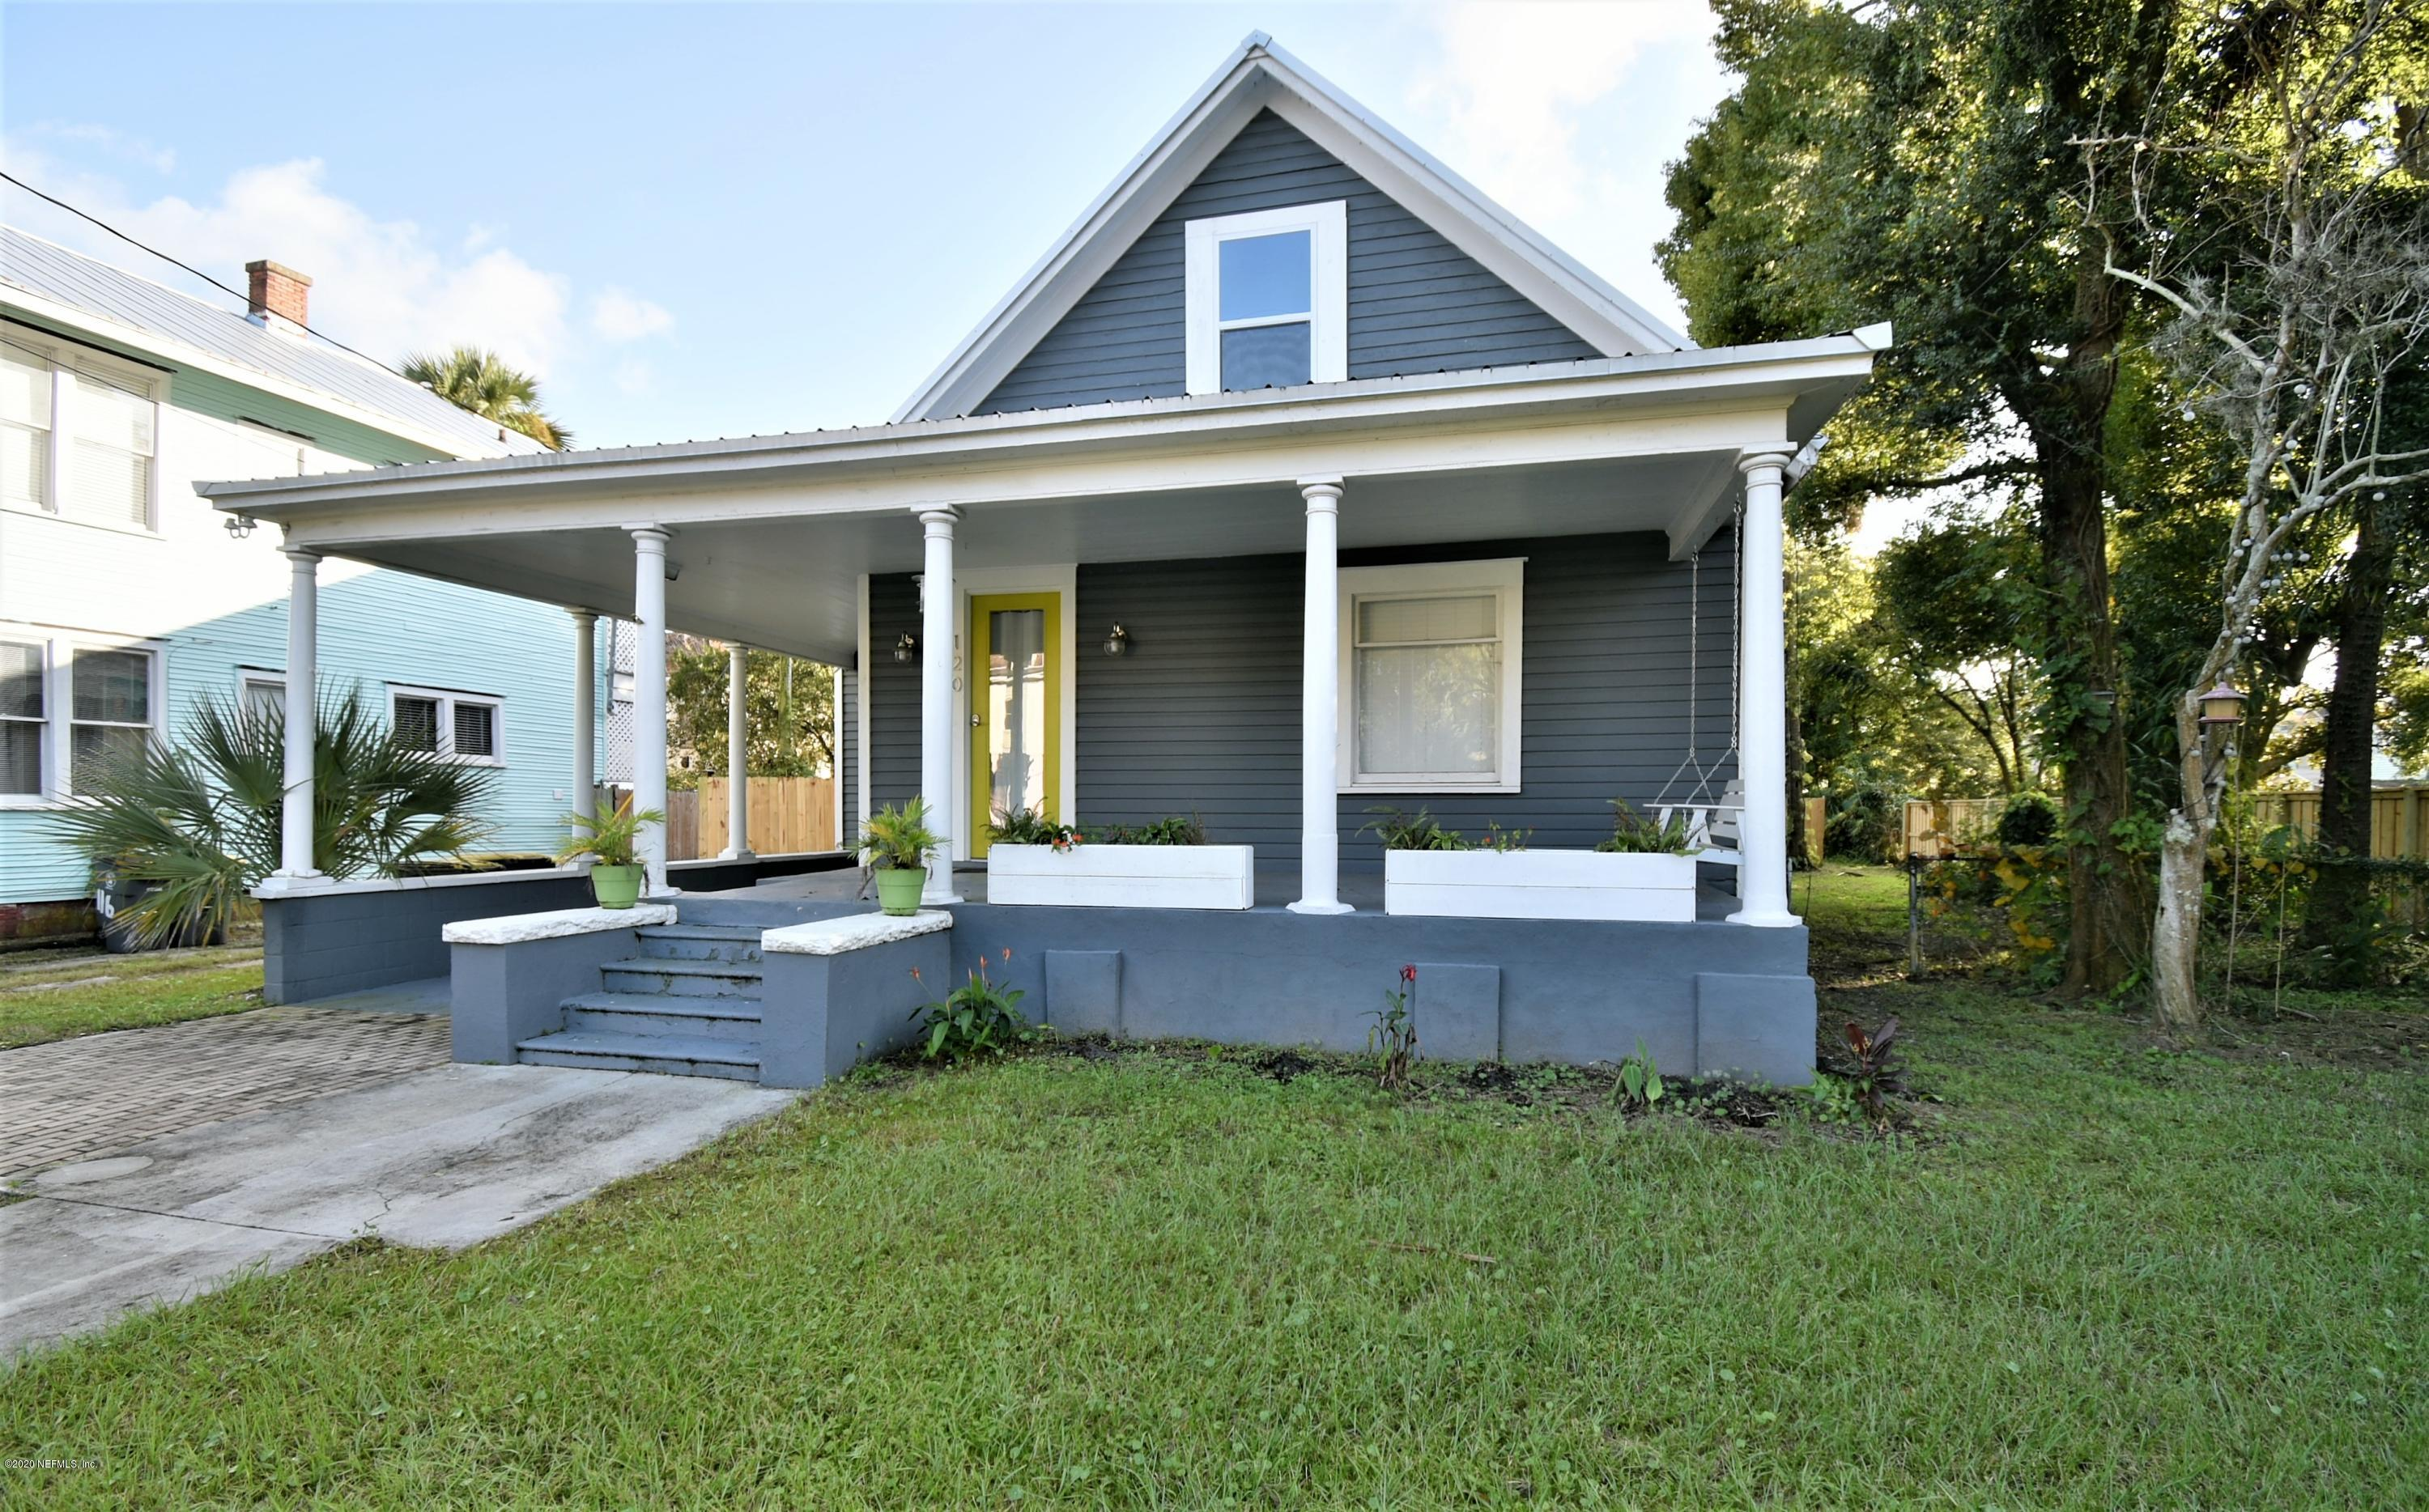 120 7TH, JACKSONVILLE, FLORIDA 32206, 2 Bedrooms Bedrooms, ,2 BathroomsBathrooms,Rental,For Rent,7TH,1082945